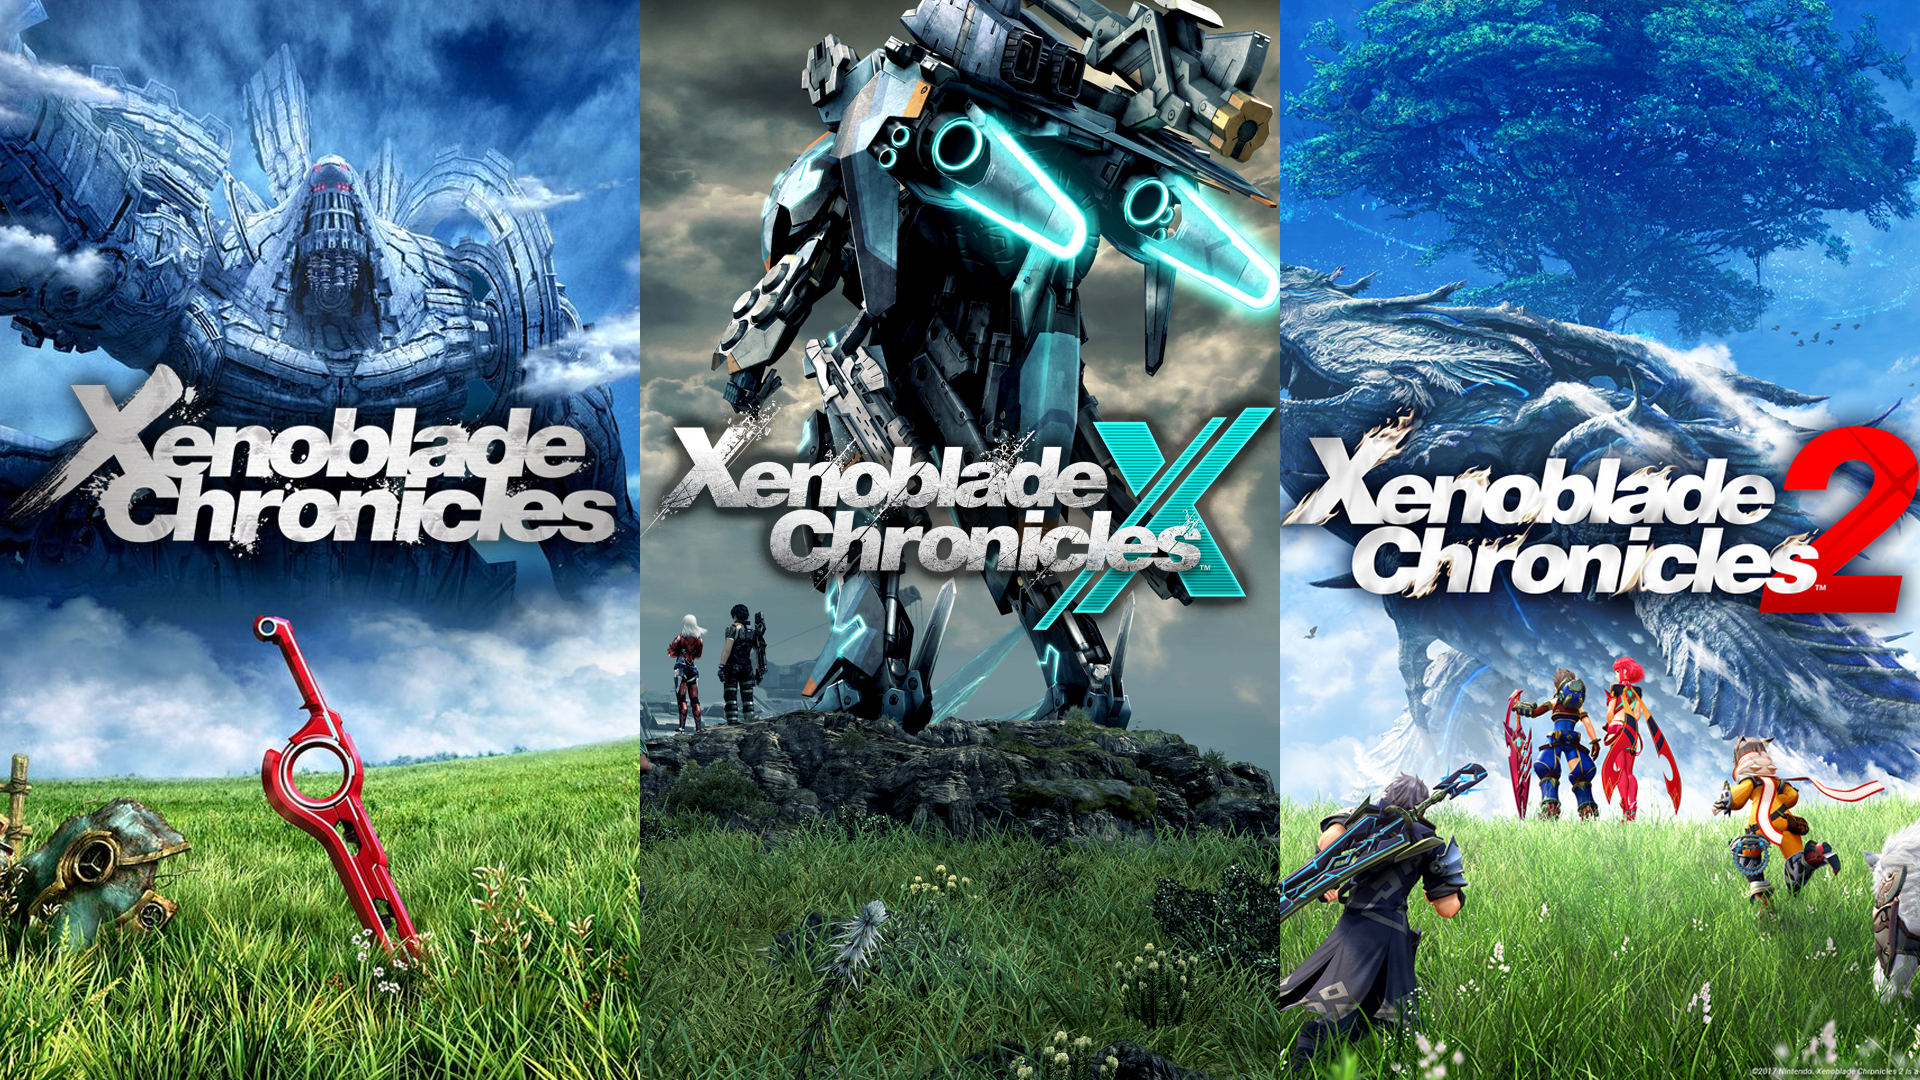 Xenoblade Chronicles 2 Hd Wallpaper Hd Xenoblade Chronicles 1